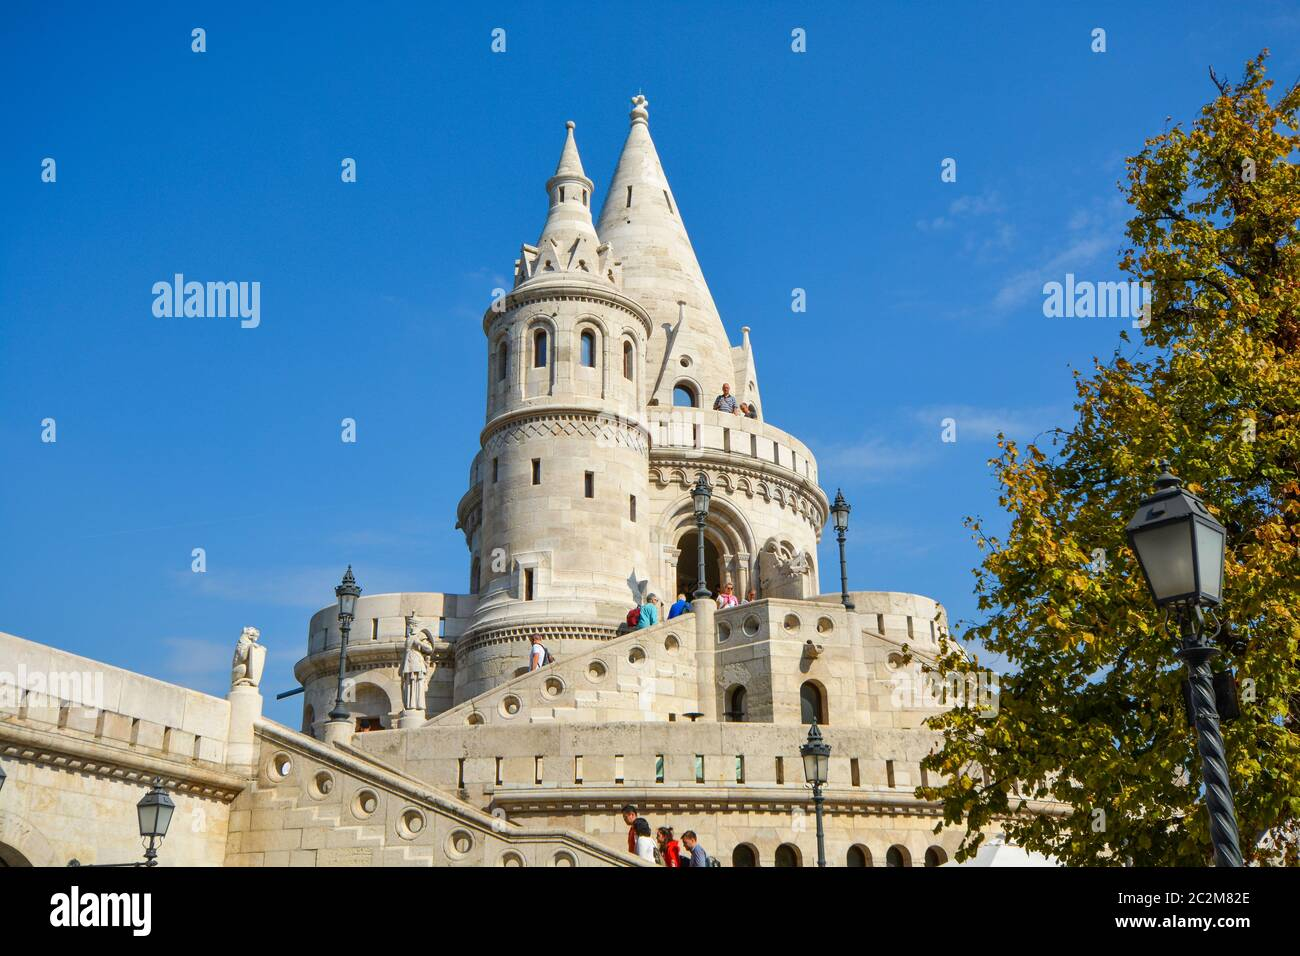 The Halászbástya or Fisherman's Bastion, a neo-gothic and Romanesque fortress at Castle Hill in the Budapest Castle District Stock Photo